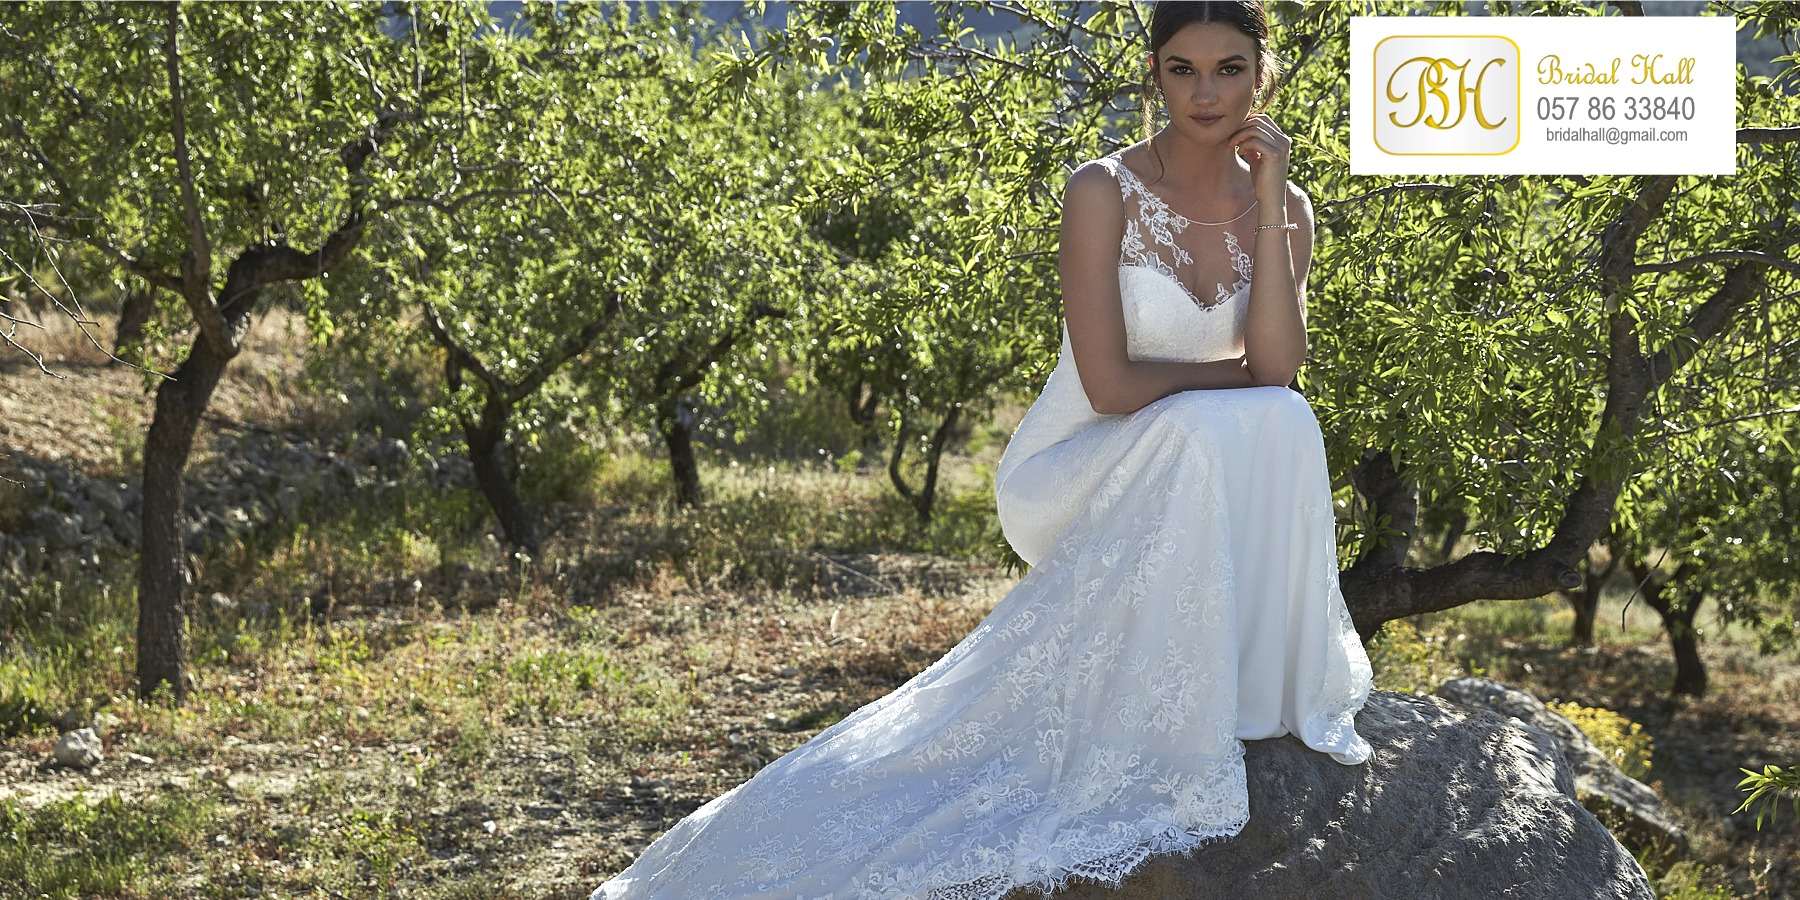 Bridal gowns, weddings dresses and accessories from Bridal Hall, Ballybrittas, County Laois, Midlands, Ireland